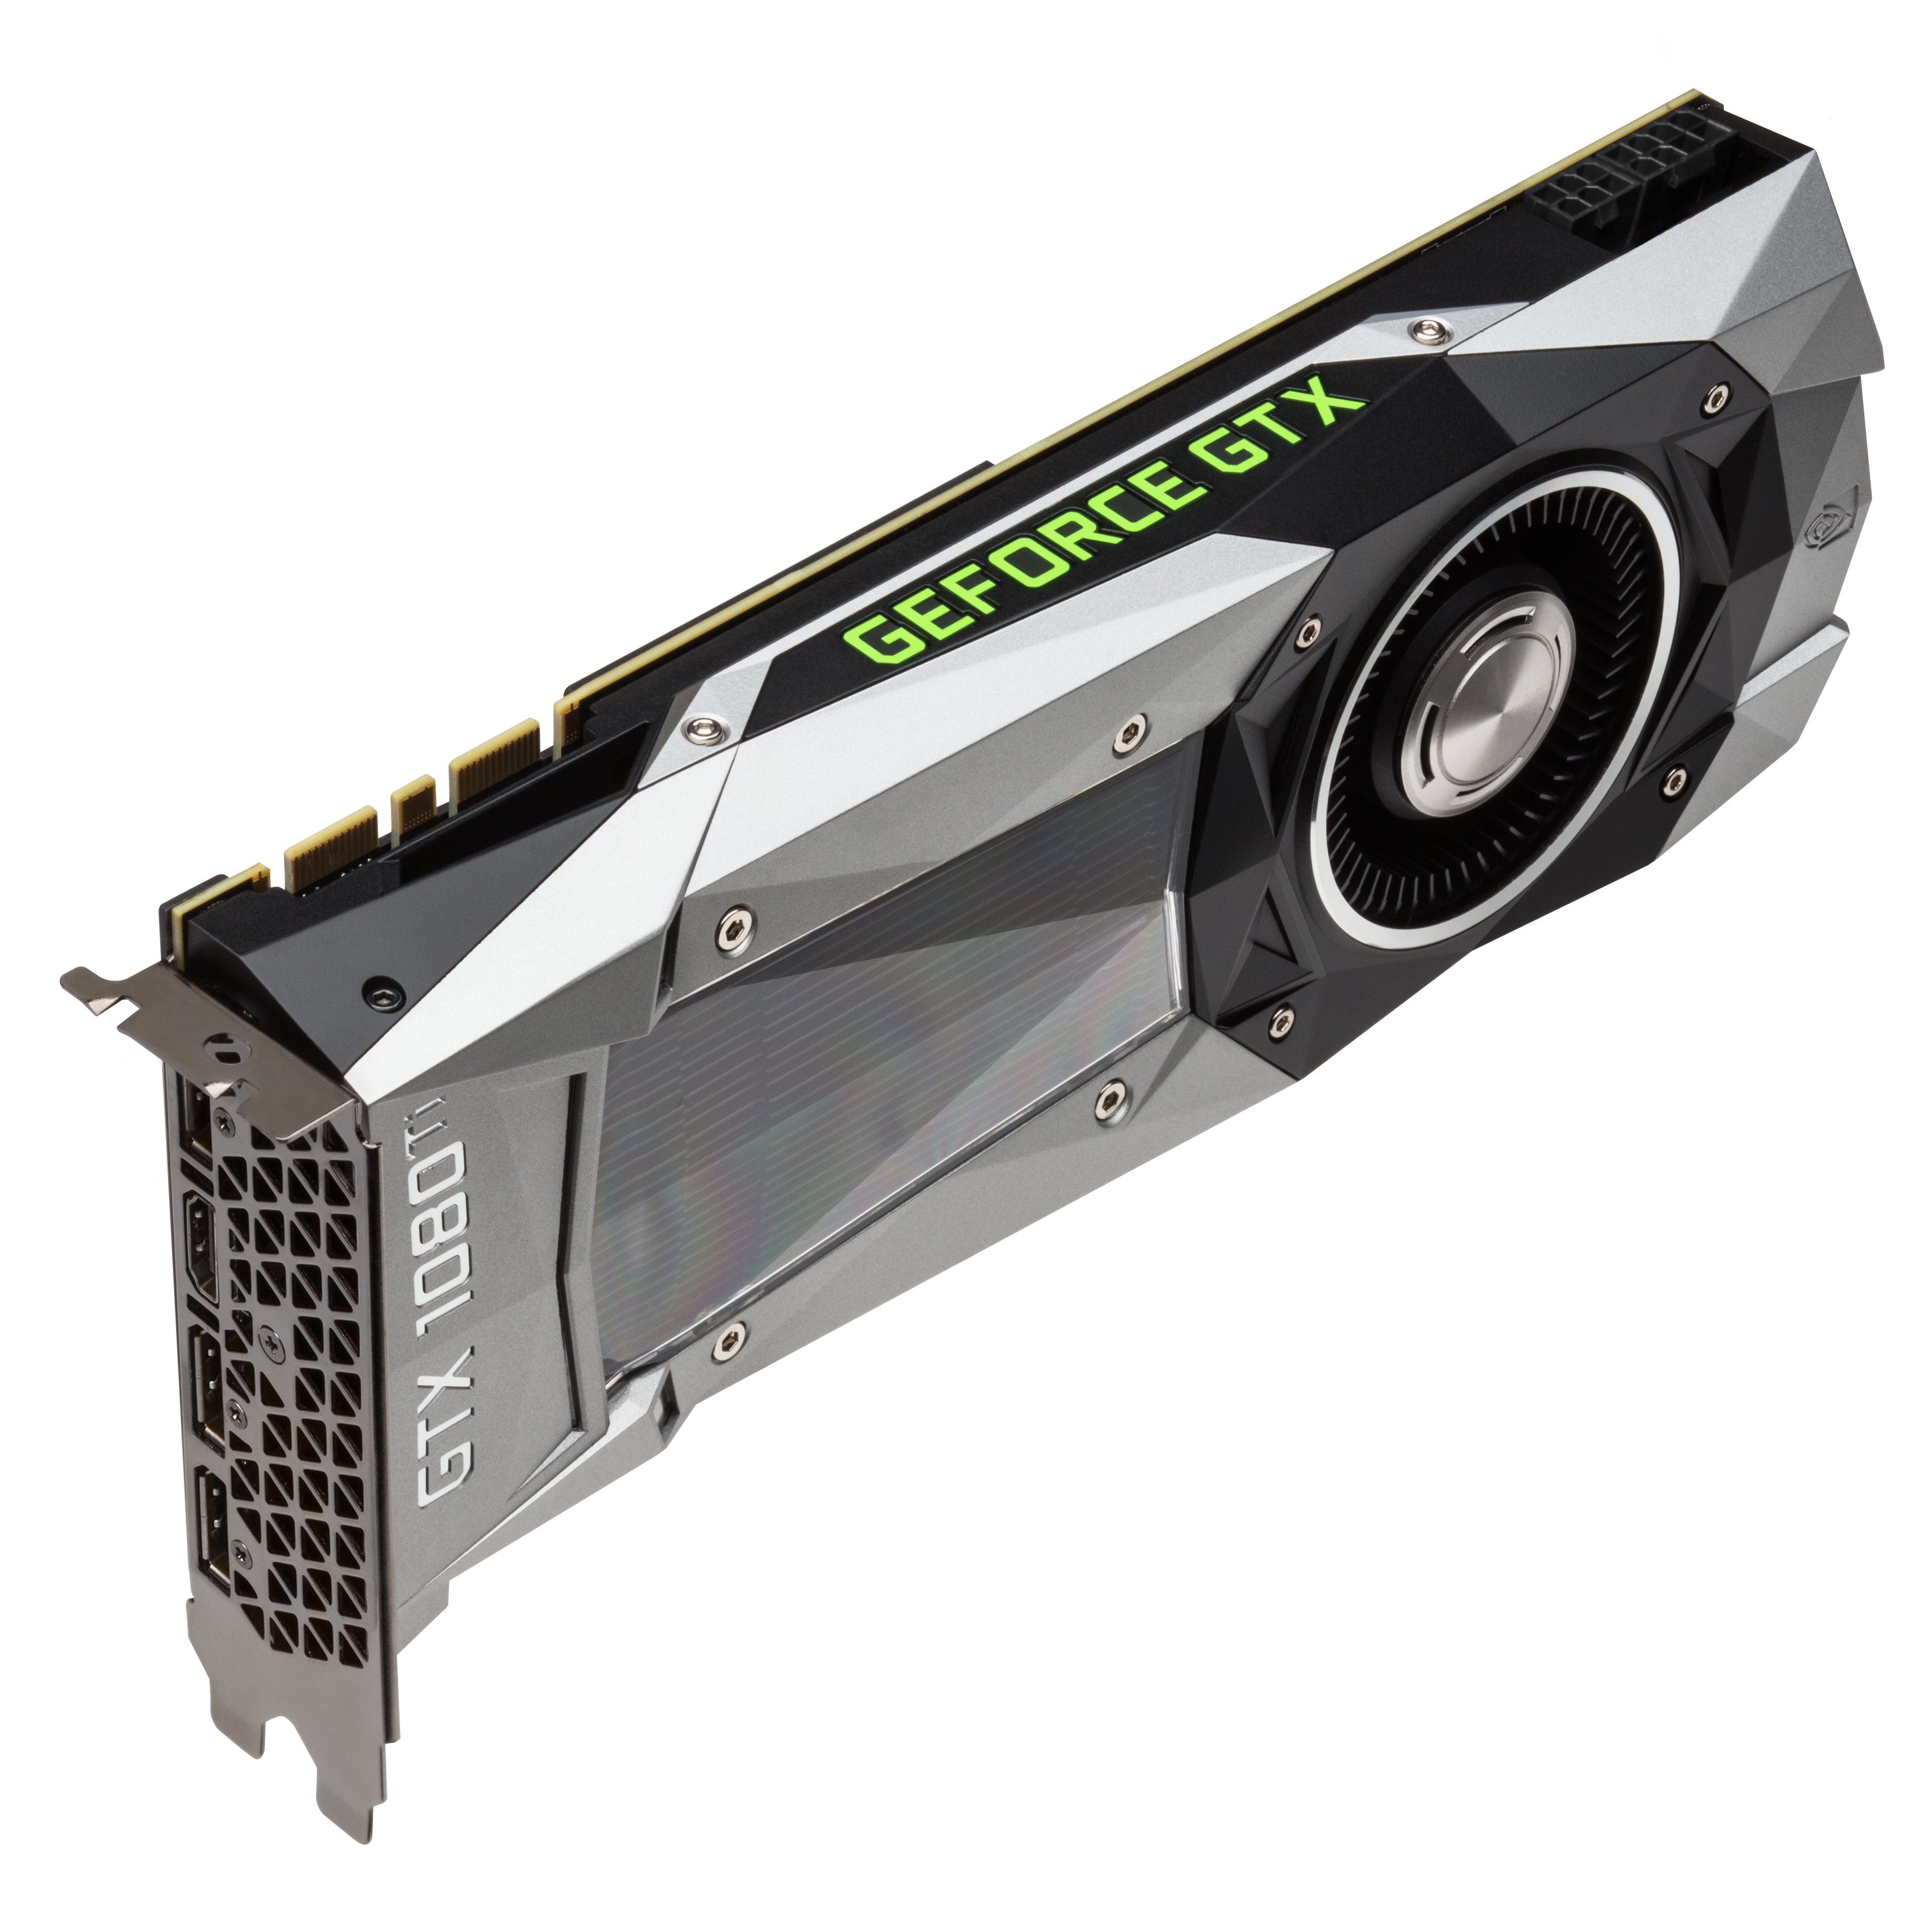 NVIDIA GeForce GTX 1080 Ti: Angled photo of the GTX 1080 Ti, showing the